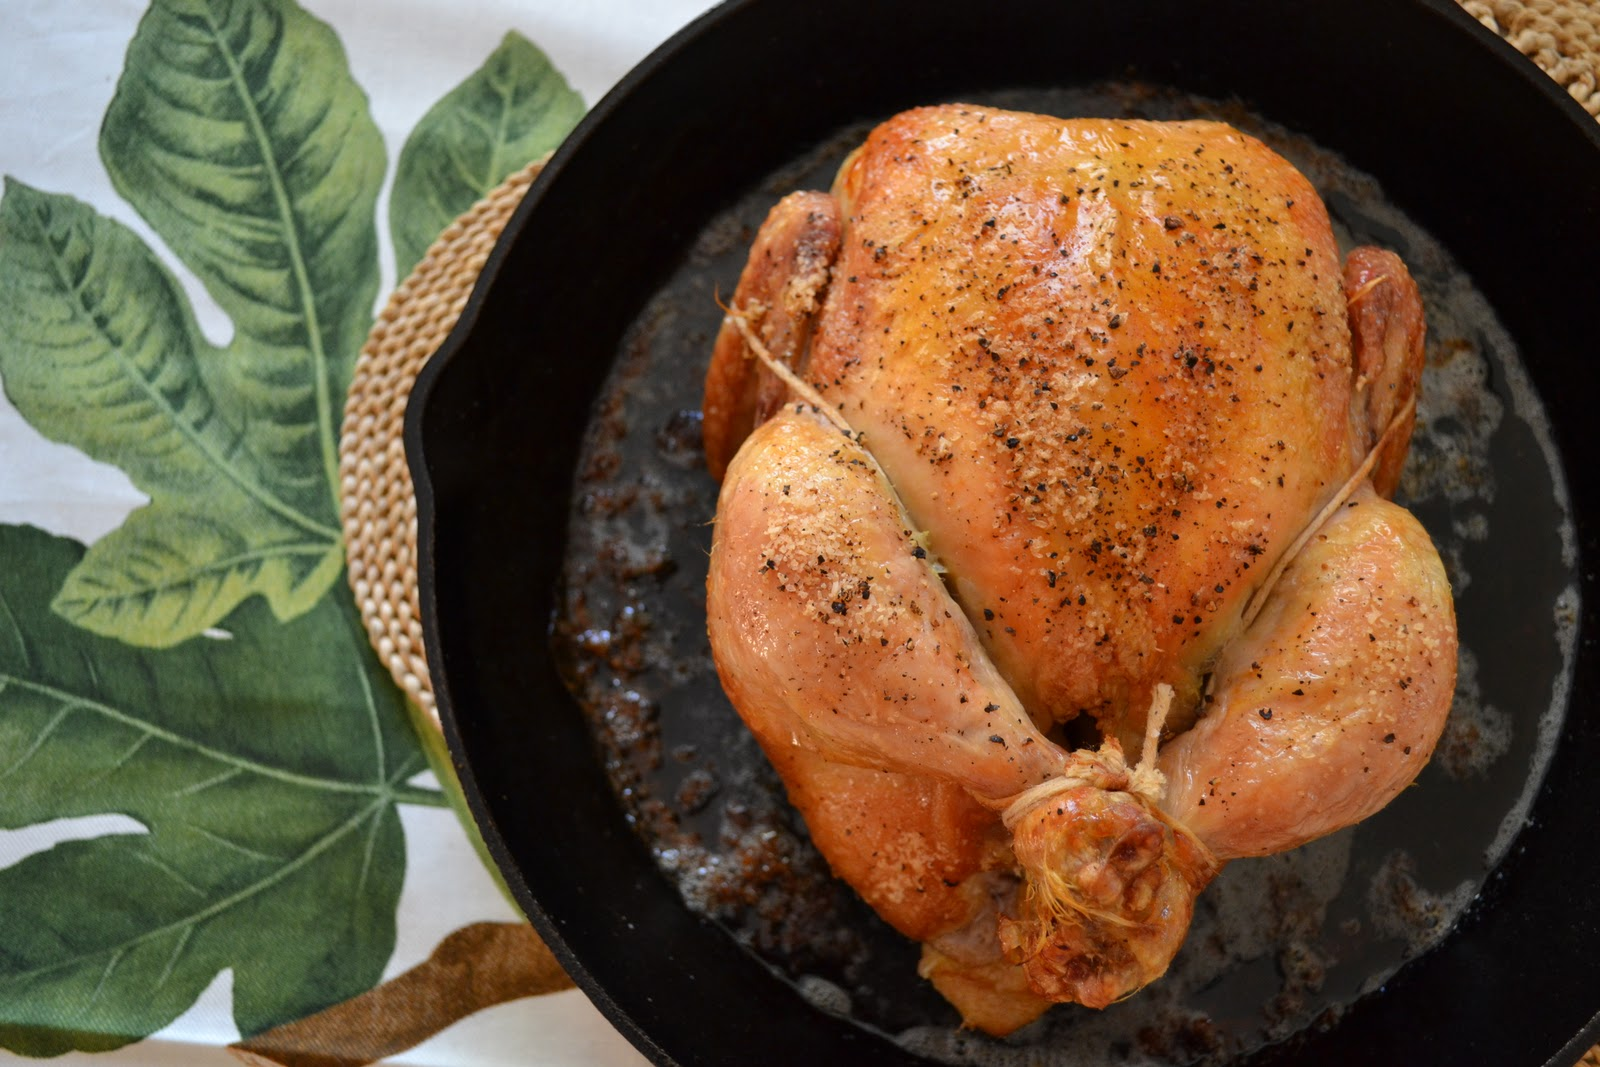 ... Thomas Keller's Bouchon : his favorite simple roast chicken. Seriously